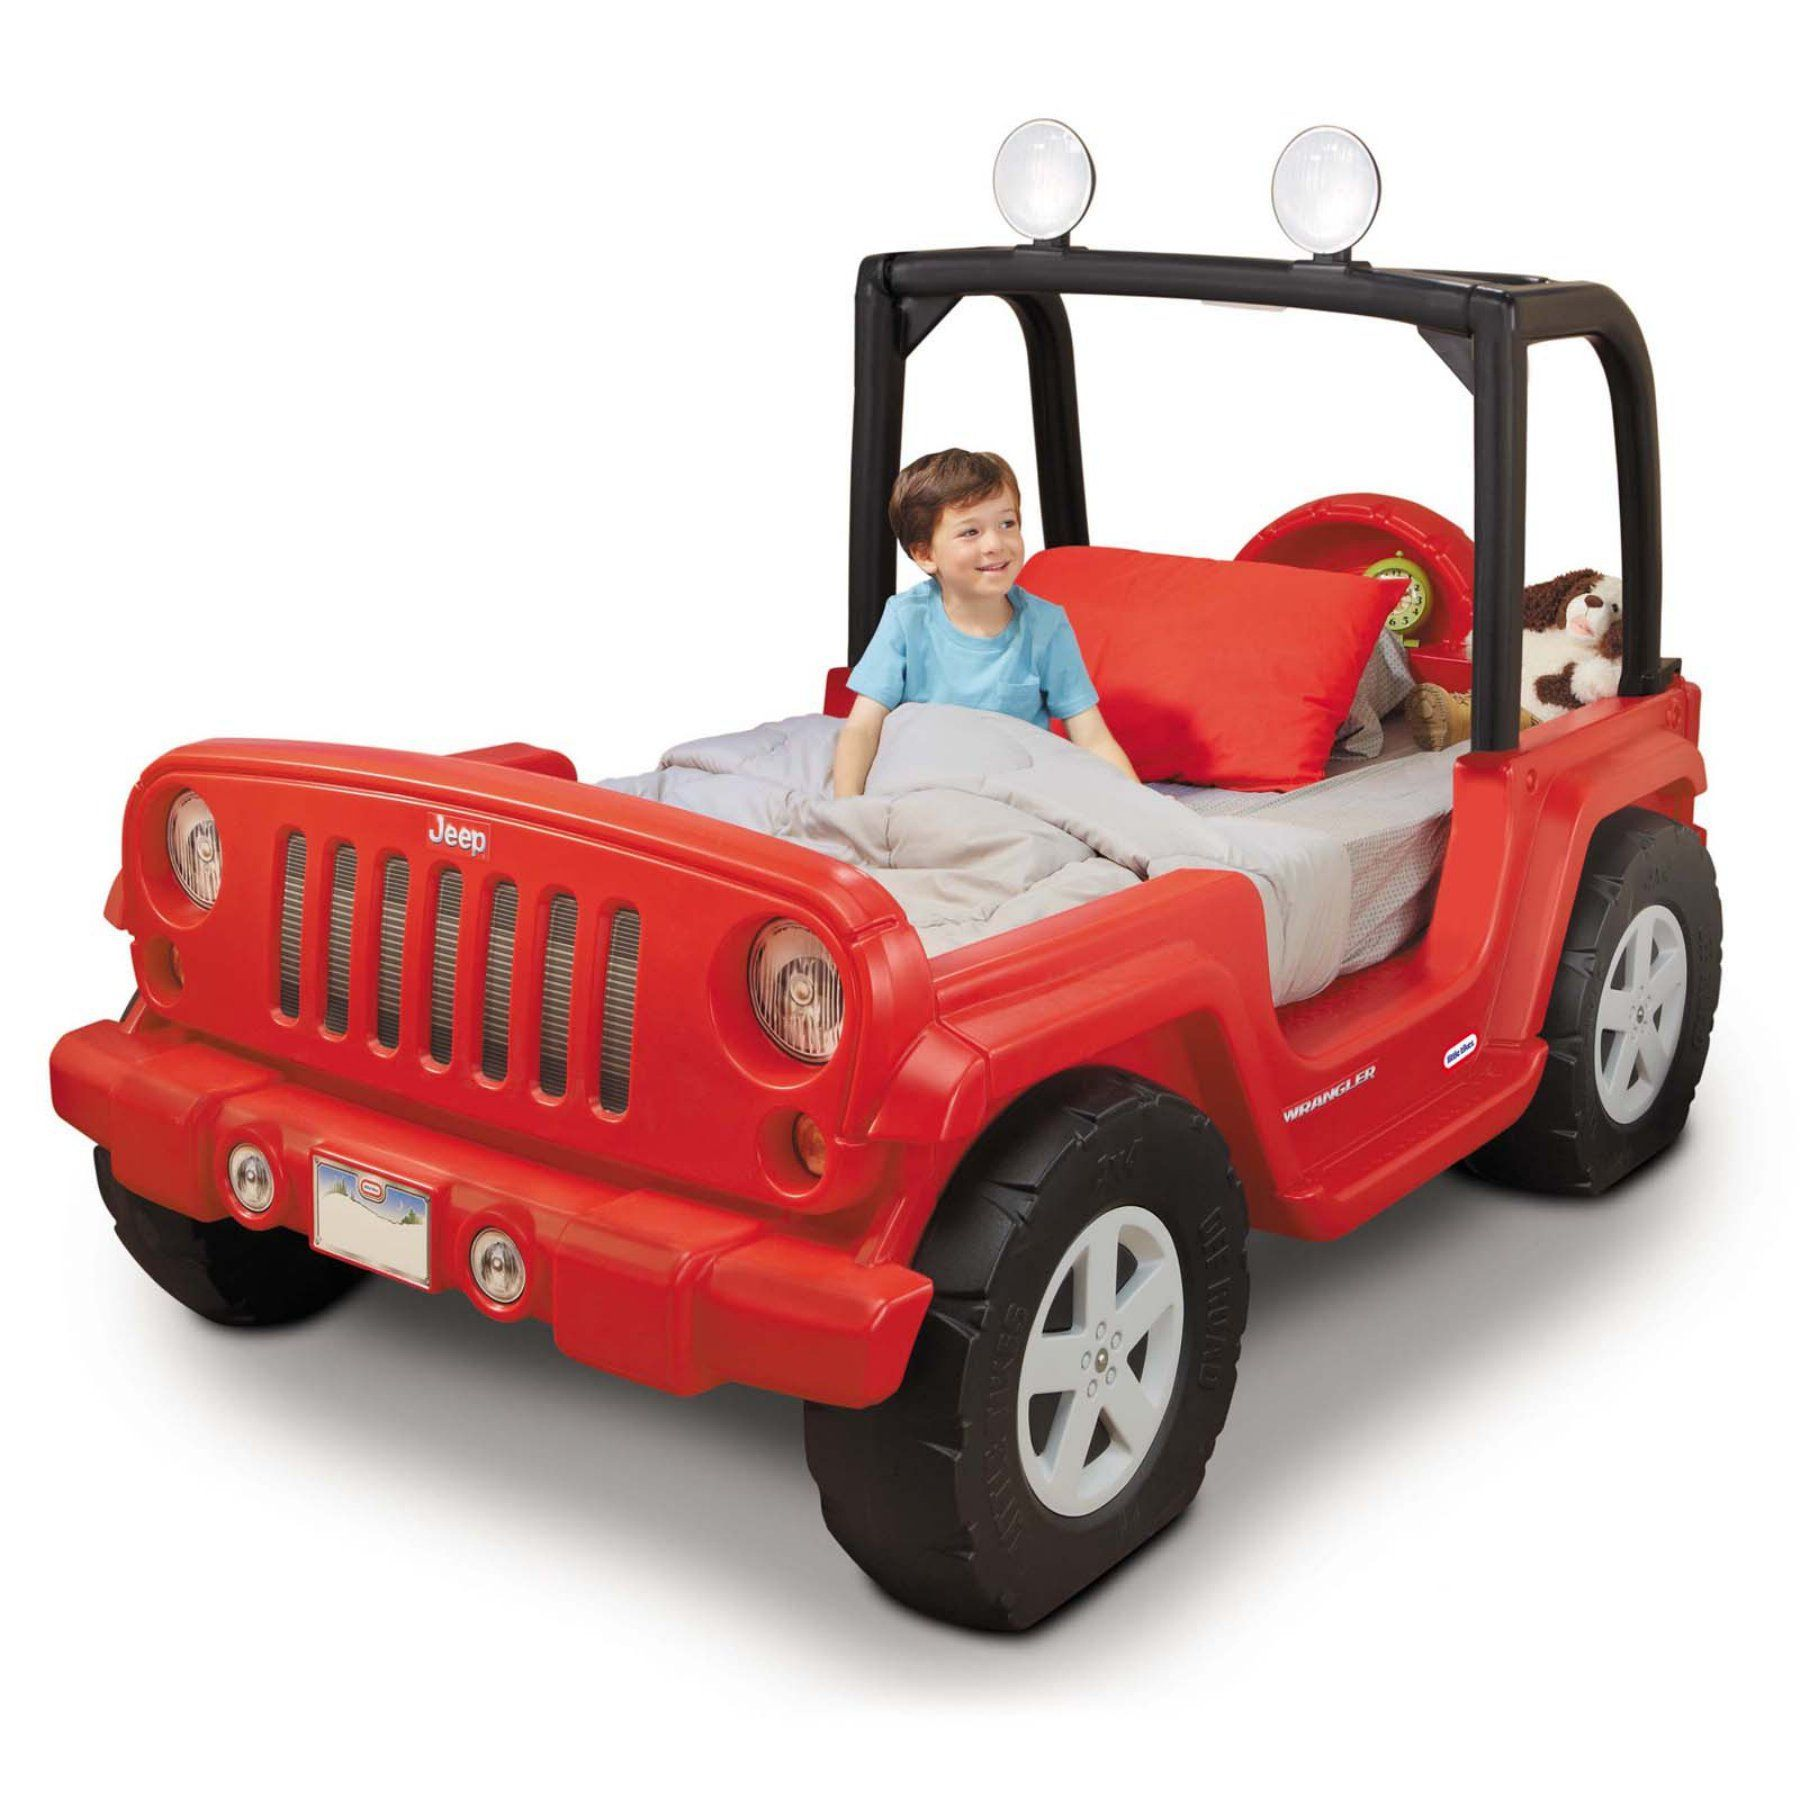 Little Tikes Jeep Wrangler Toddler to Twin Bed 635632M